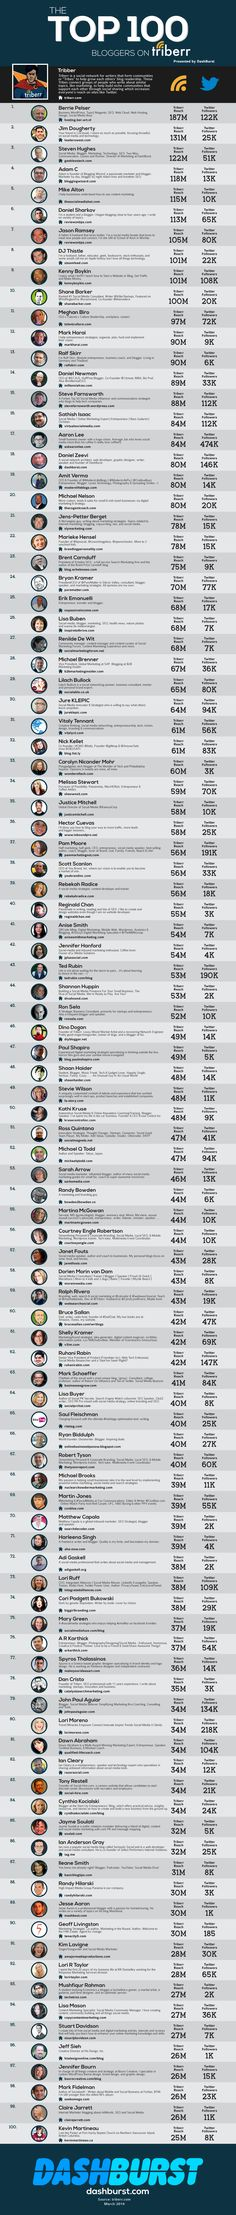 The Top 100 Bloggers on Triberr [INFOGRAPHIC]